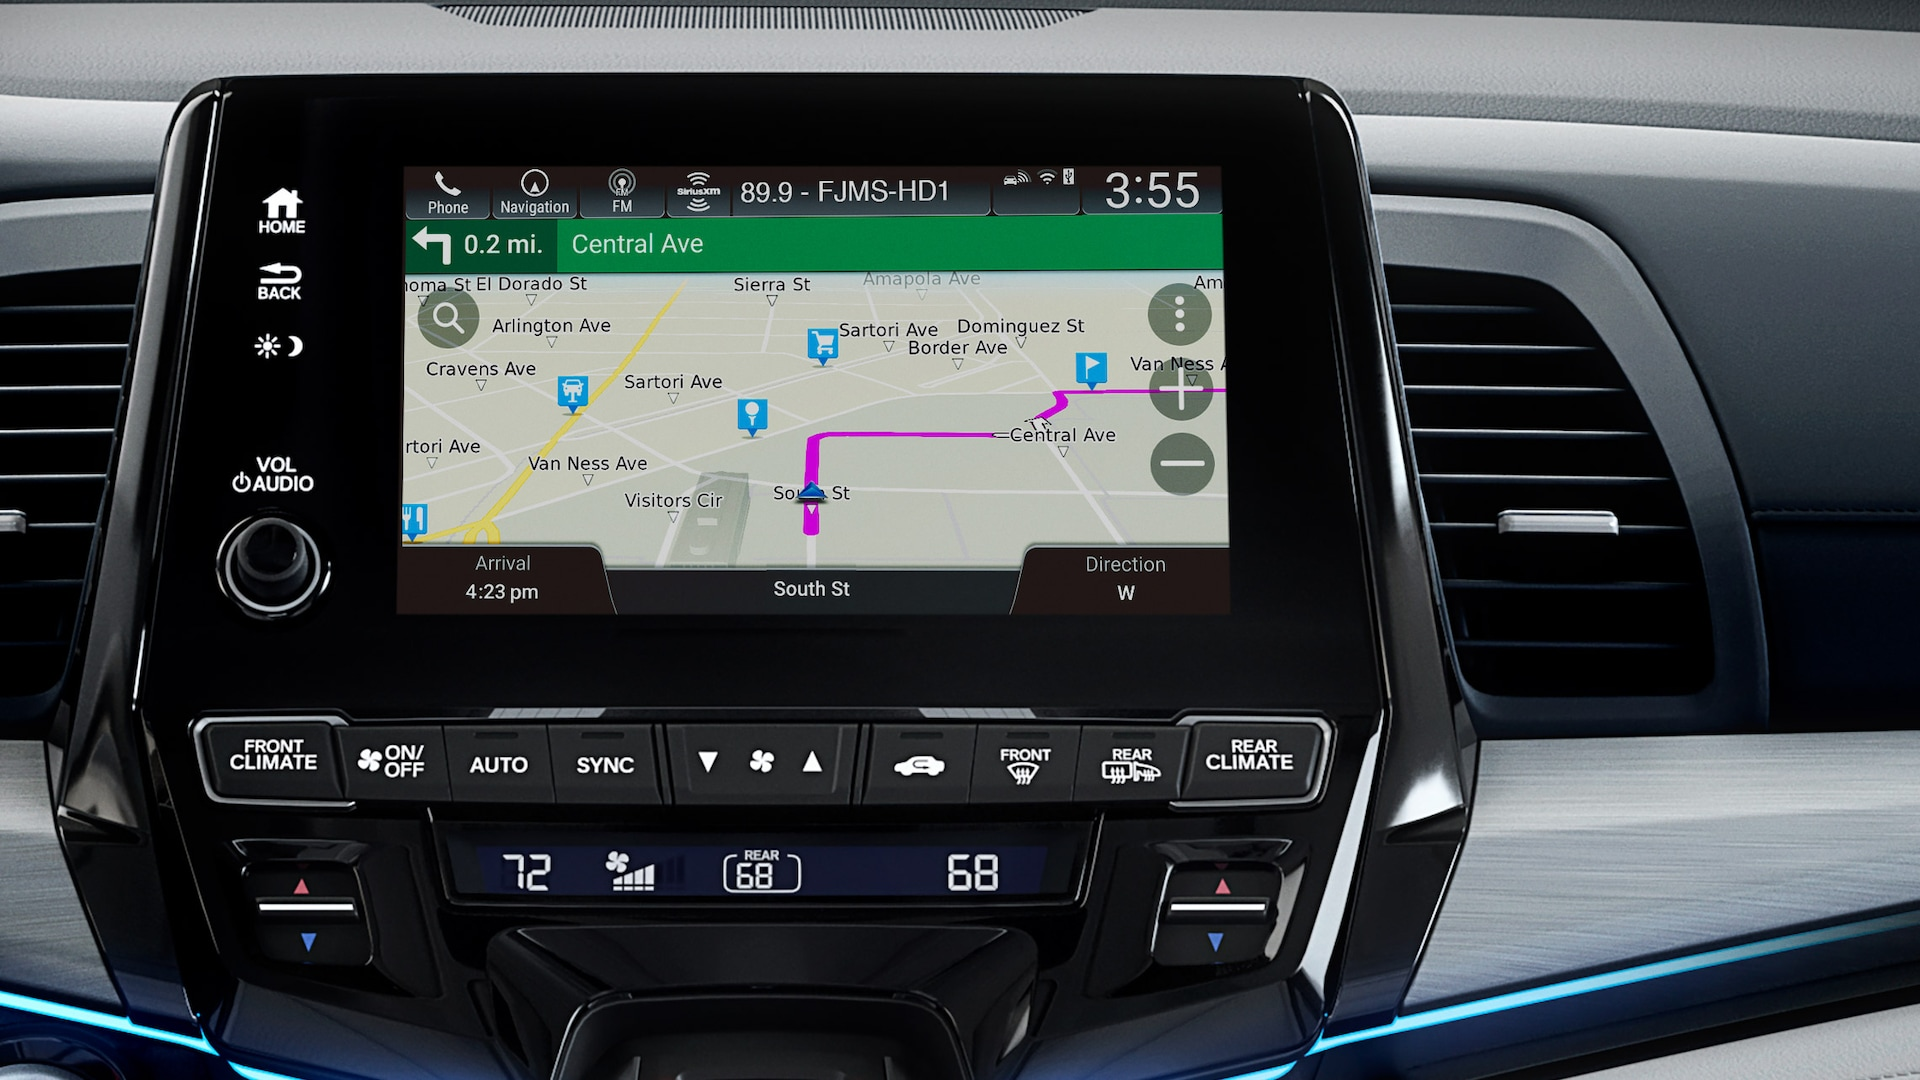 Honda Satellite-Linked Navigation System® detail on Display Audio touch-screen in 2020 Honda Odyssey Elite with Gray Leather.